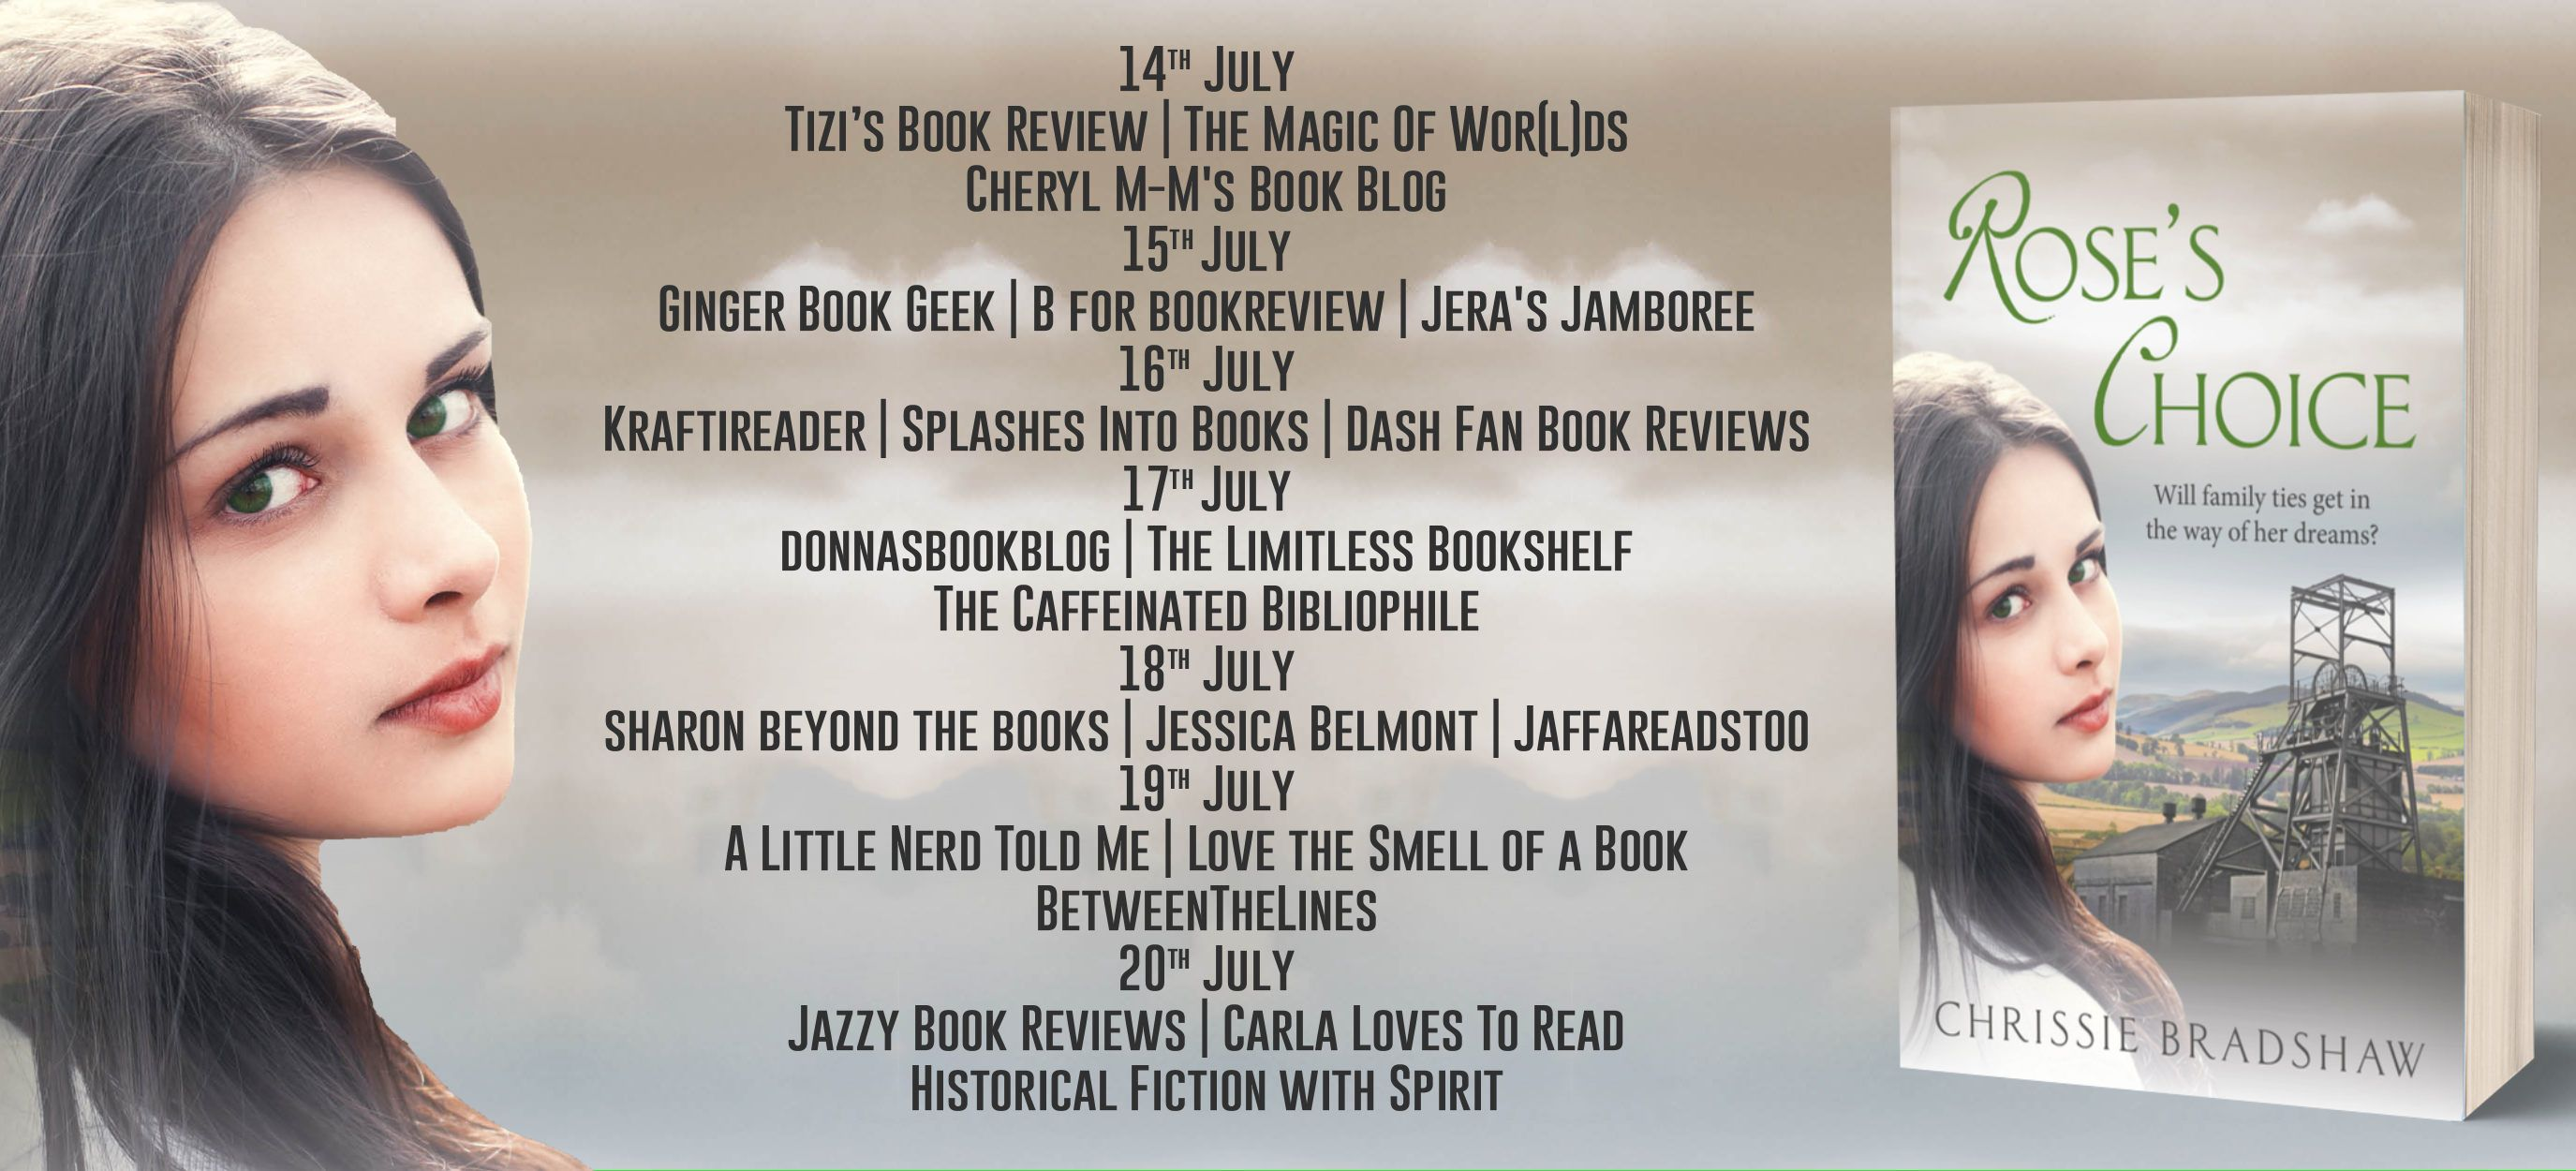 Rose S Choice By Chrissie Bradshaw Interview Blogtour Rararesources Chrissiebeee B For Bookreview